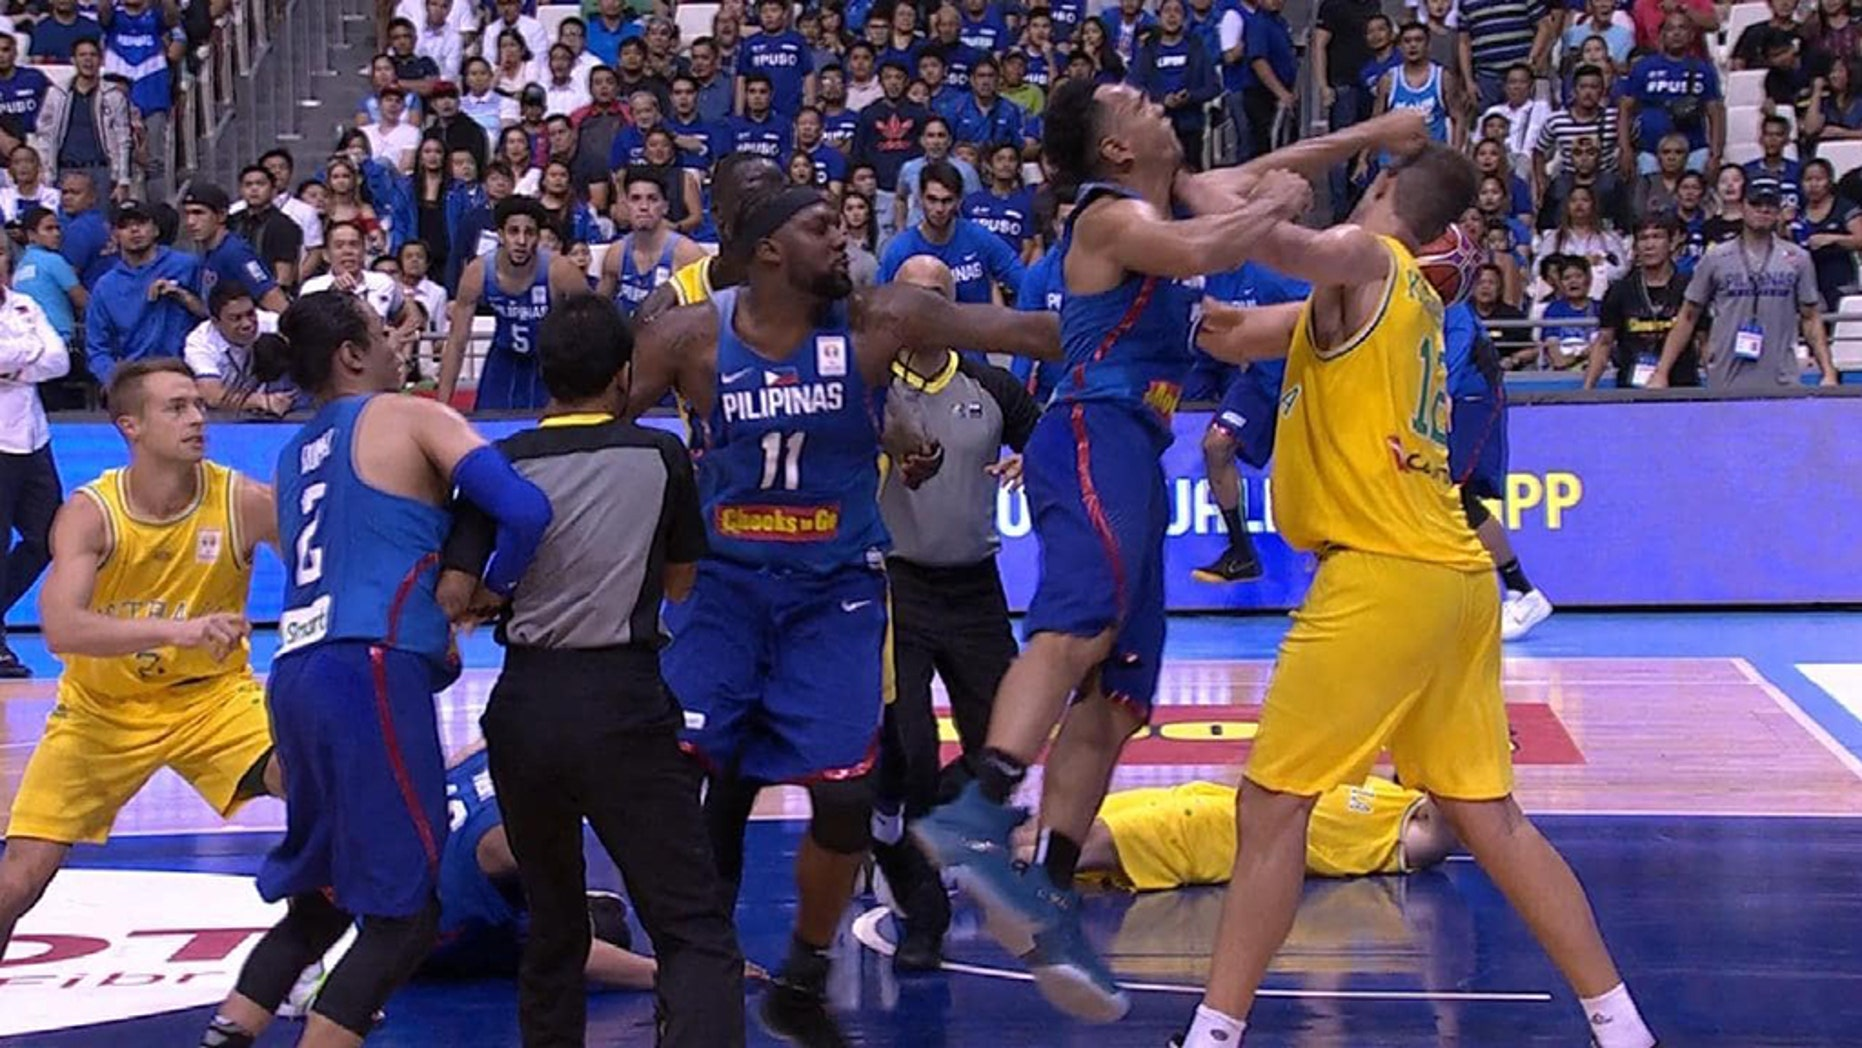 A violent brawl broke out during a game between Australia and the Philippines.